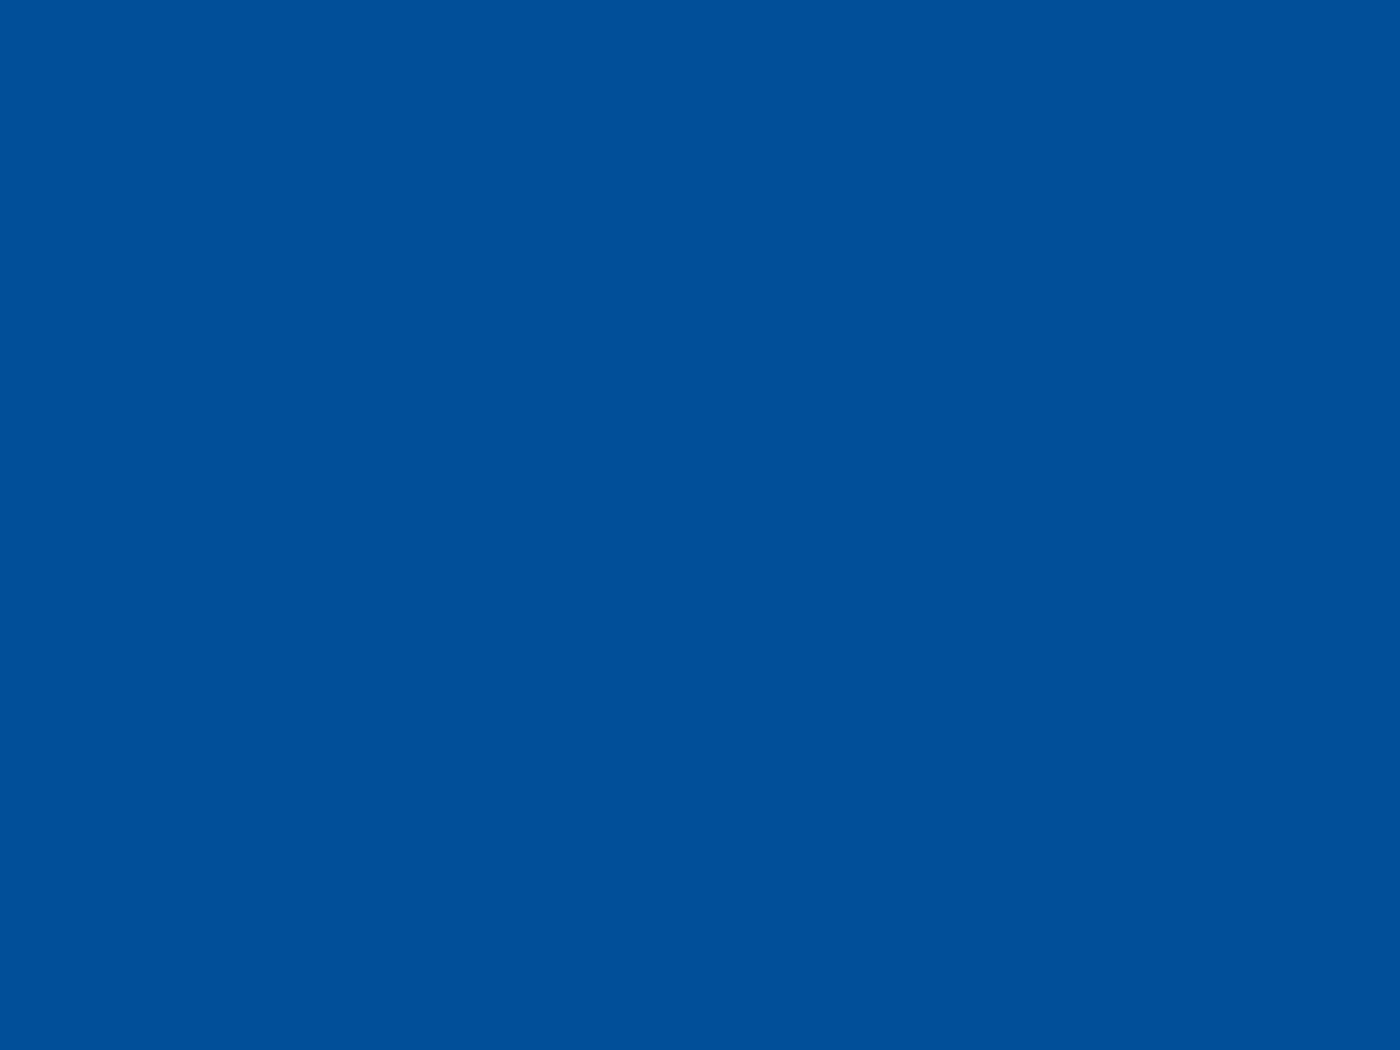 1400x1050 USAFA Blue Solid Color Background